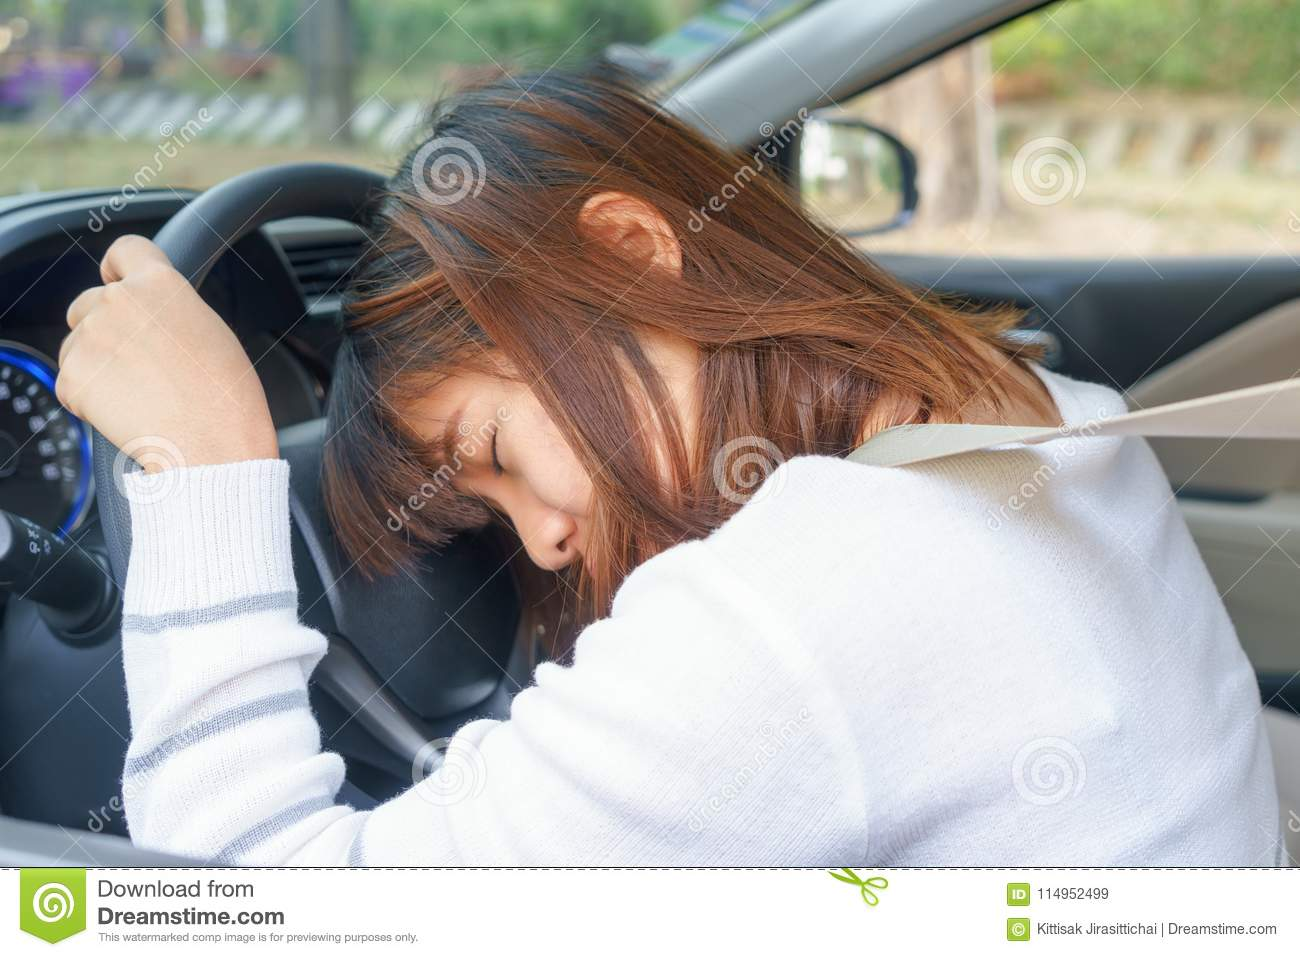 Sleep, Tired, Close Eyes Young Woman Driving Her Car After